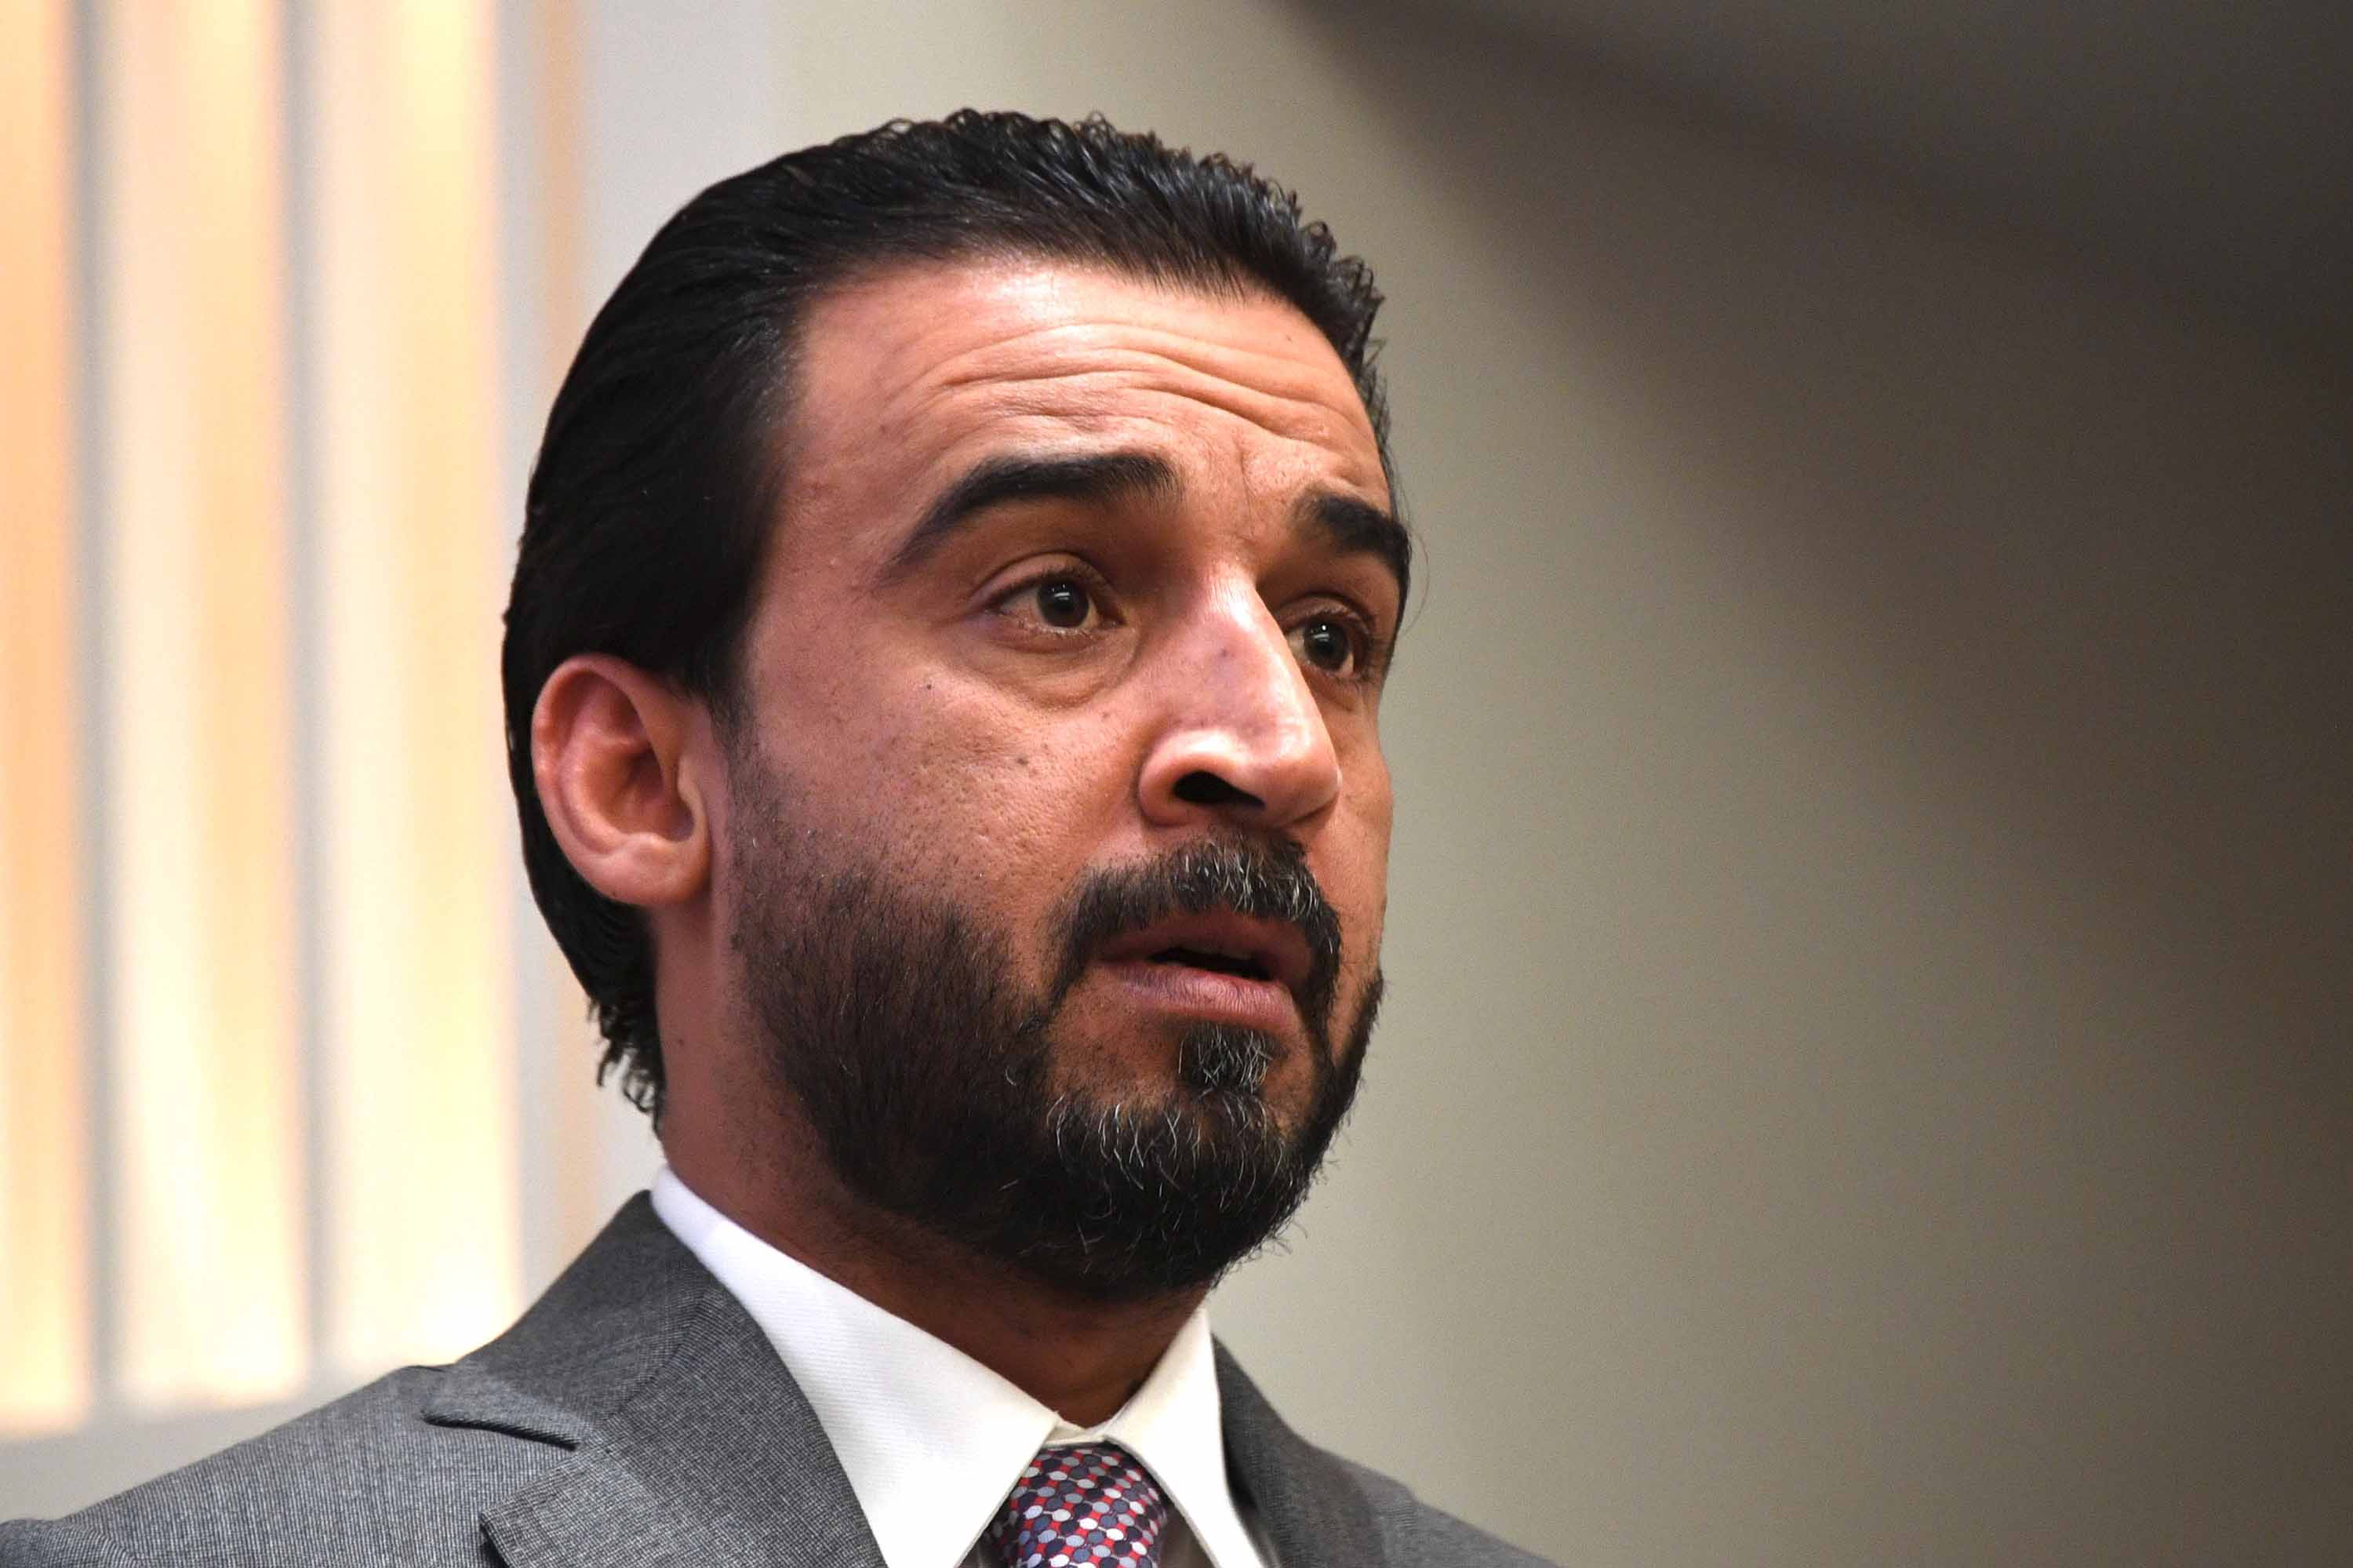 Iraq Council of Representatives Speaker Mohammed al-Halbousi speaks in Washington, DC, on March 29, 2019.